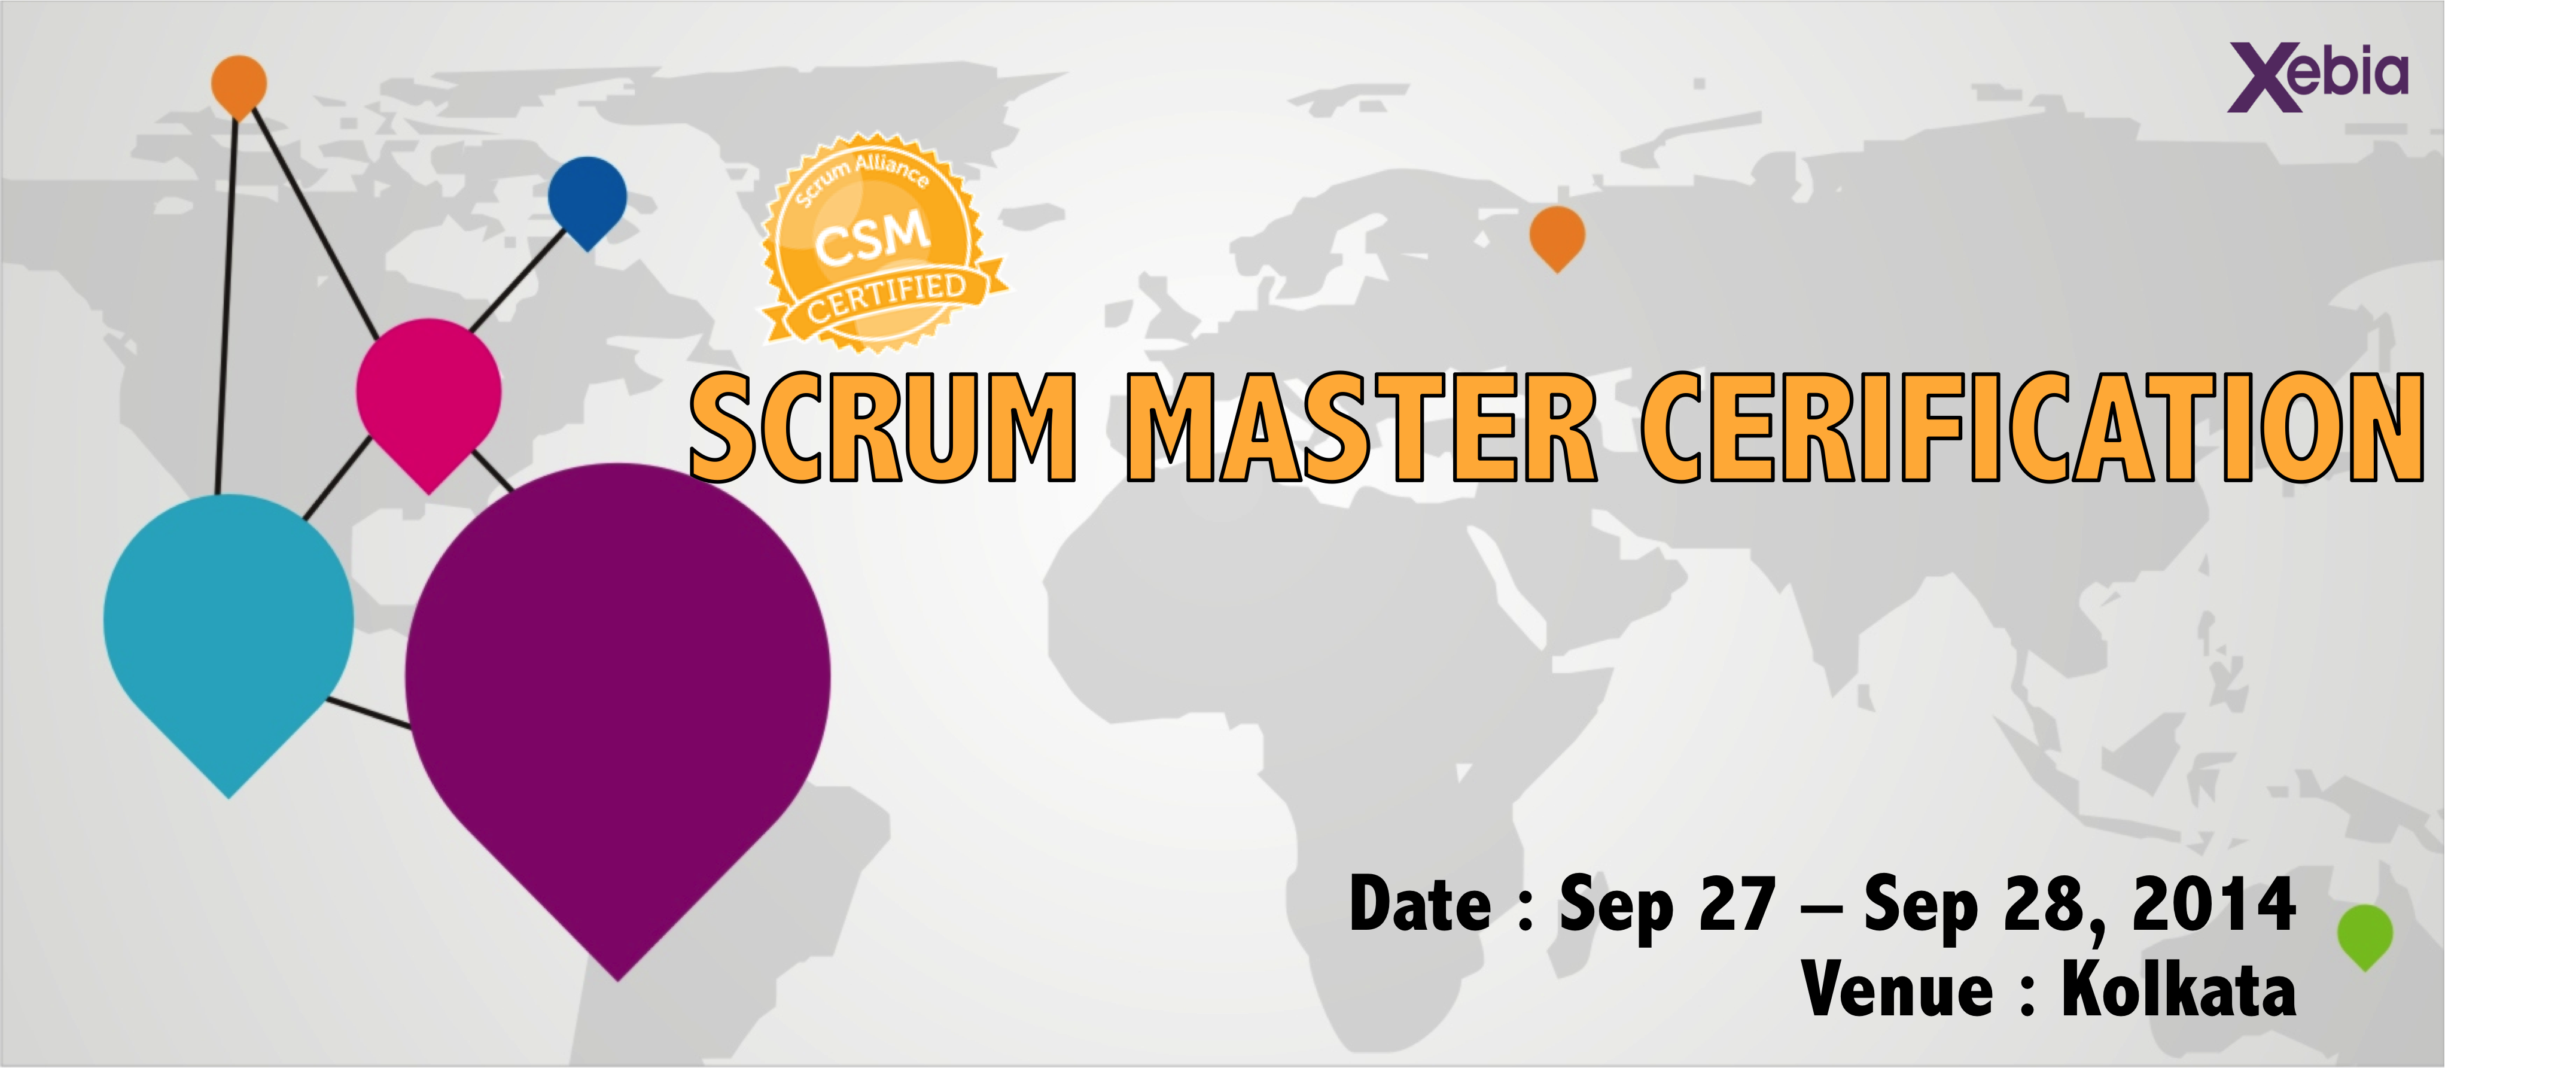 Scrum Master Certification is an official training by Scrum Alliance to be a Certified Scrum Master. Passing a test after it ensures csm certification